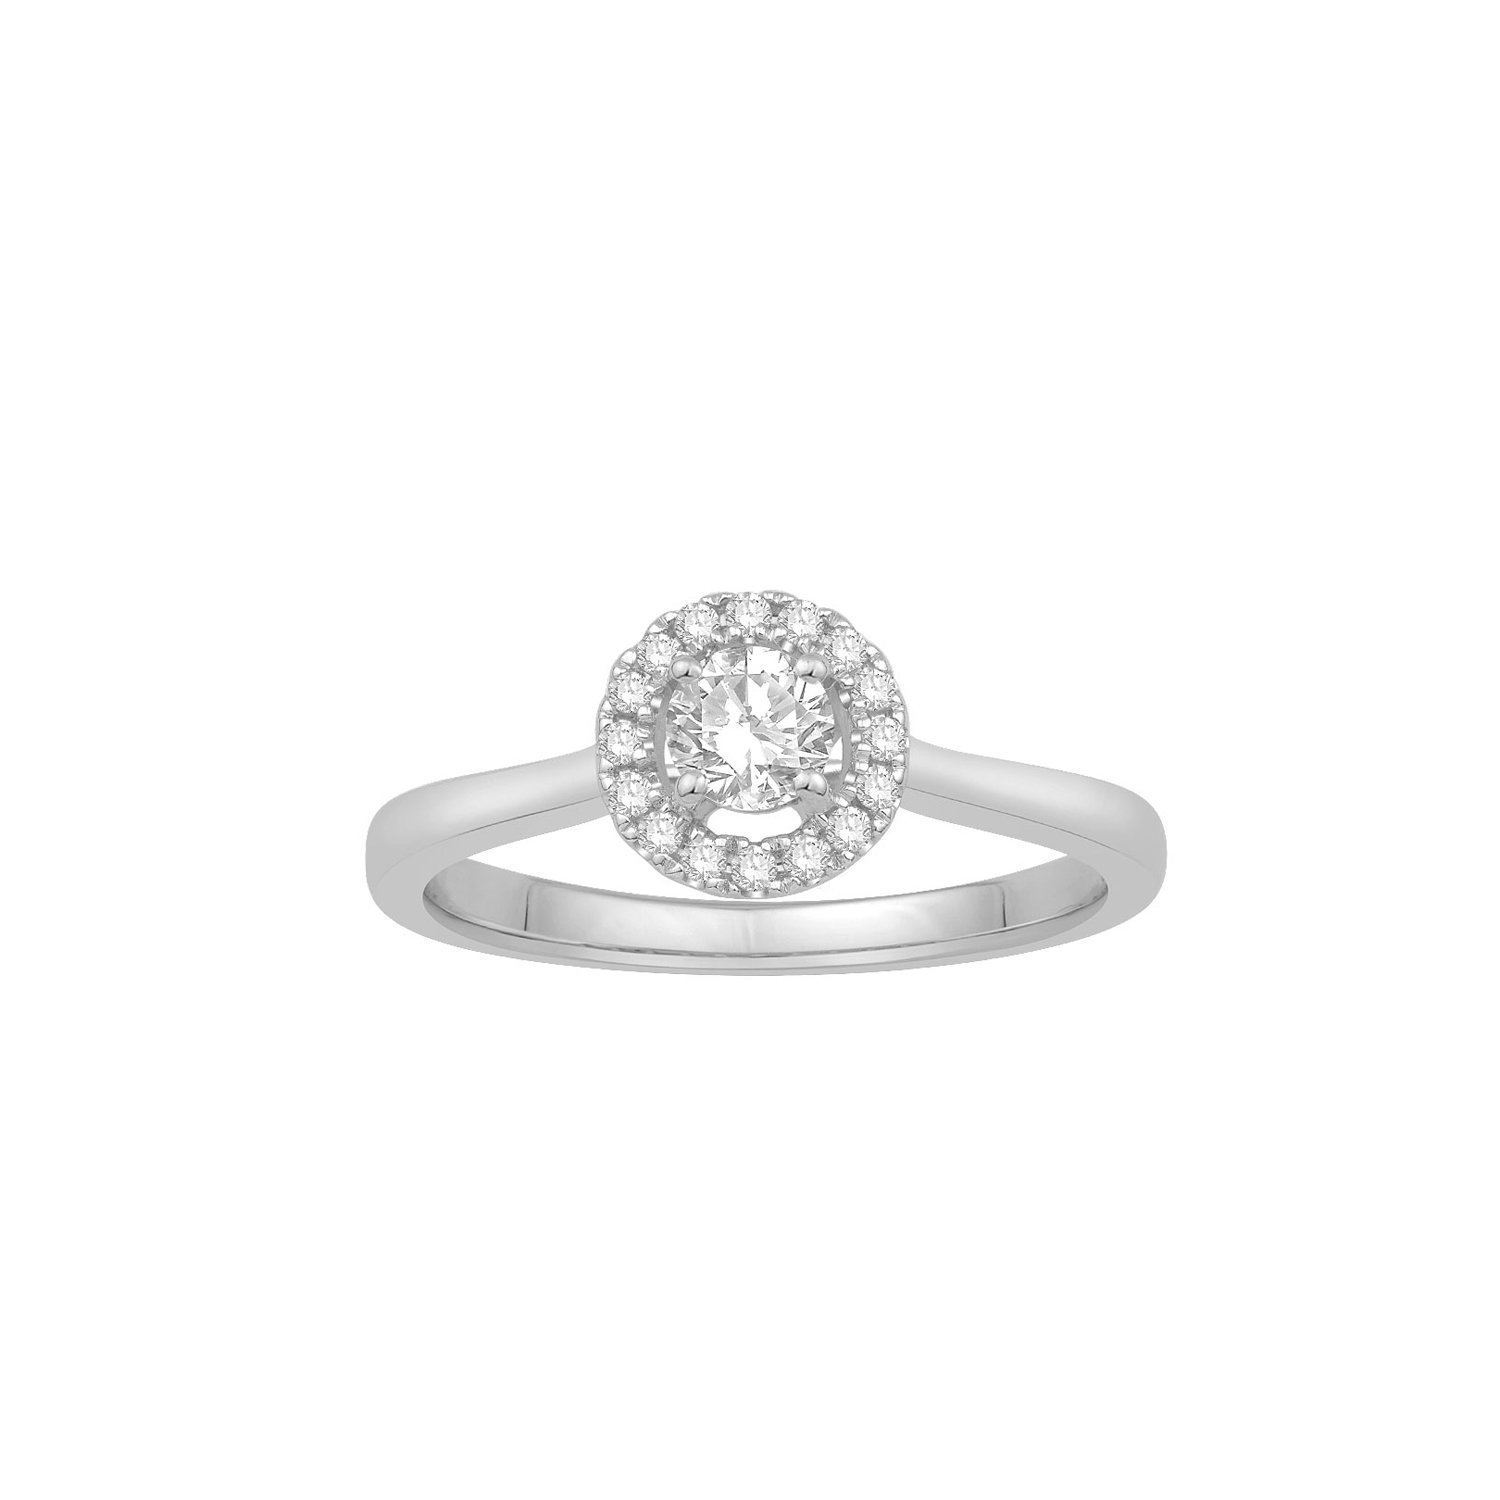 Bague en or blanc et diamants de 0.44ct